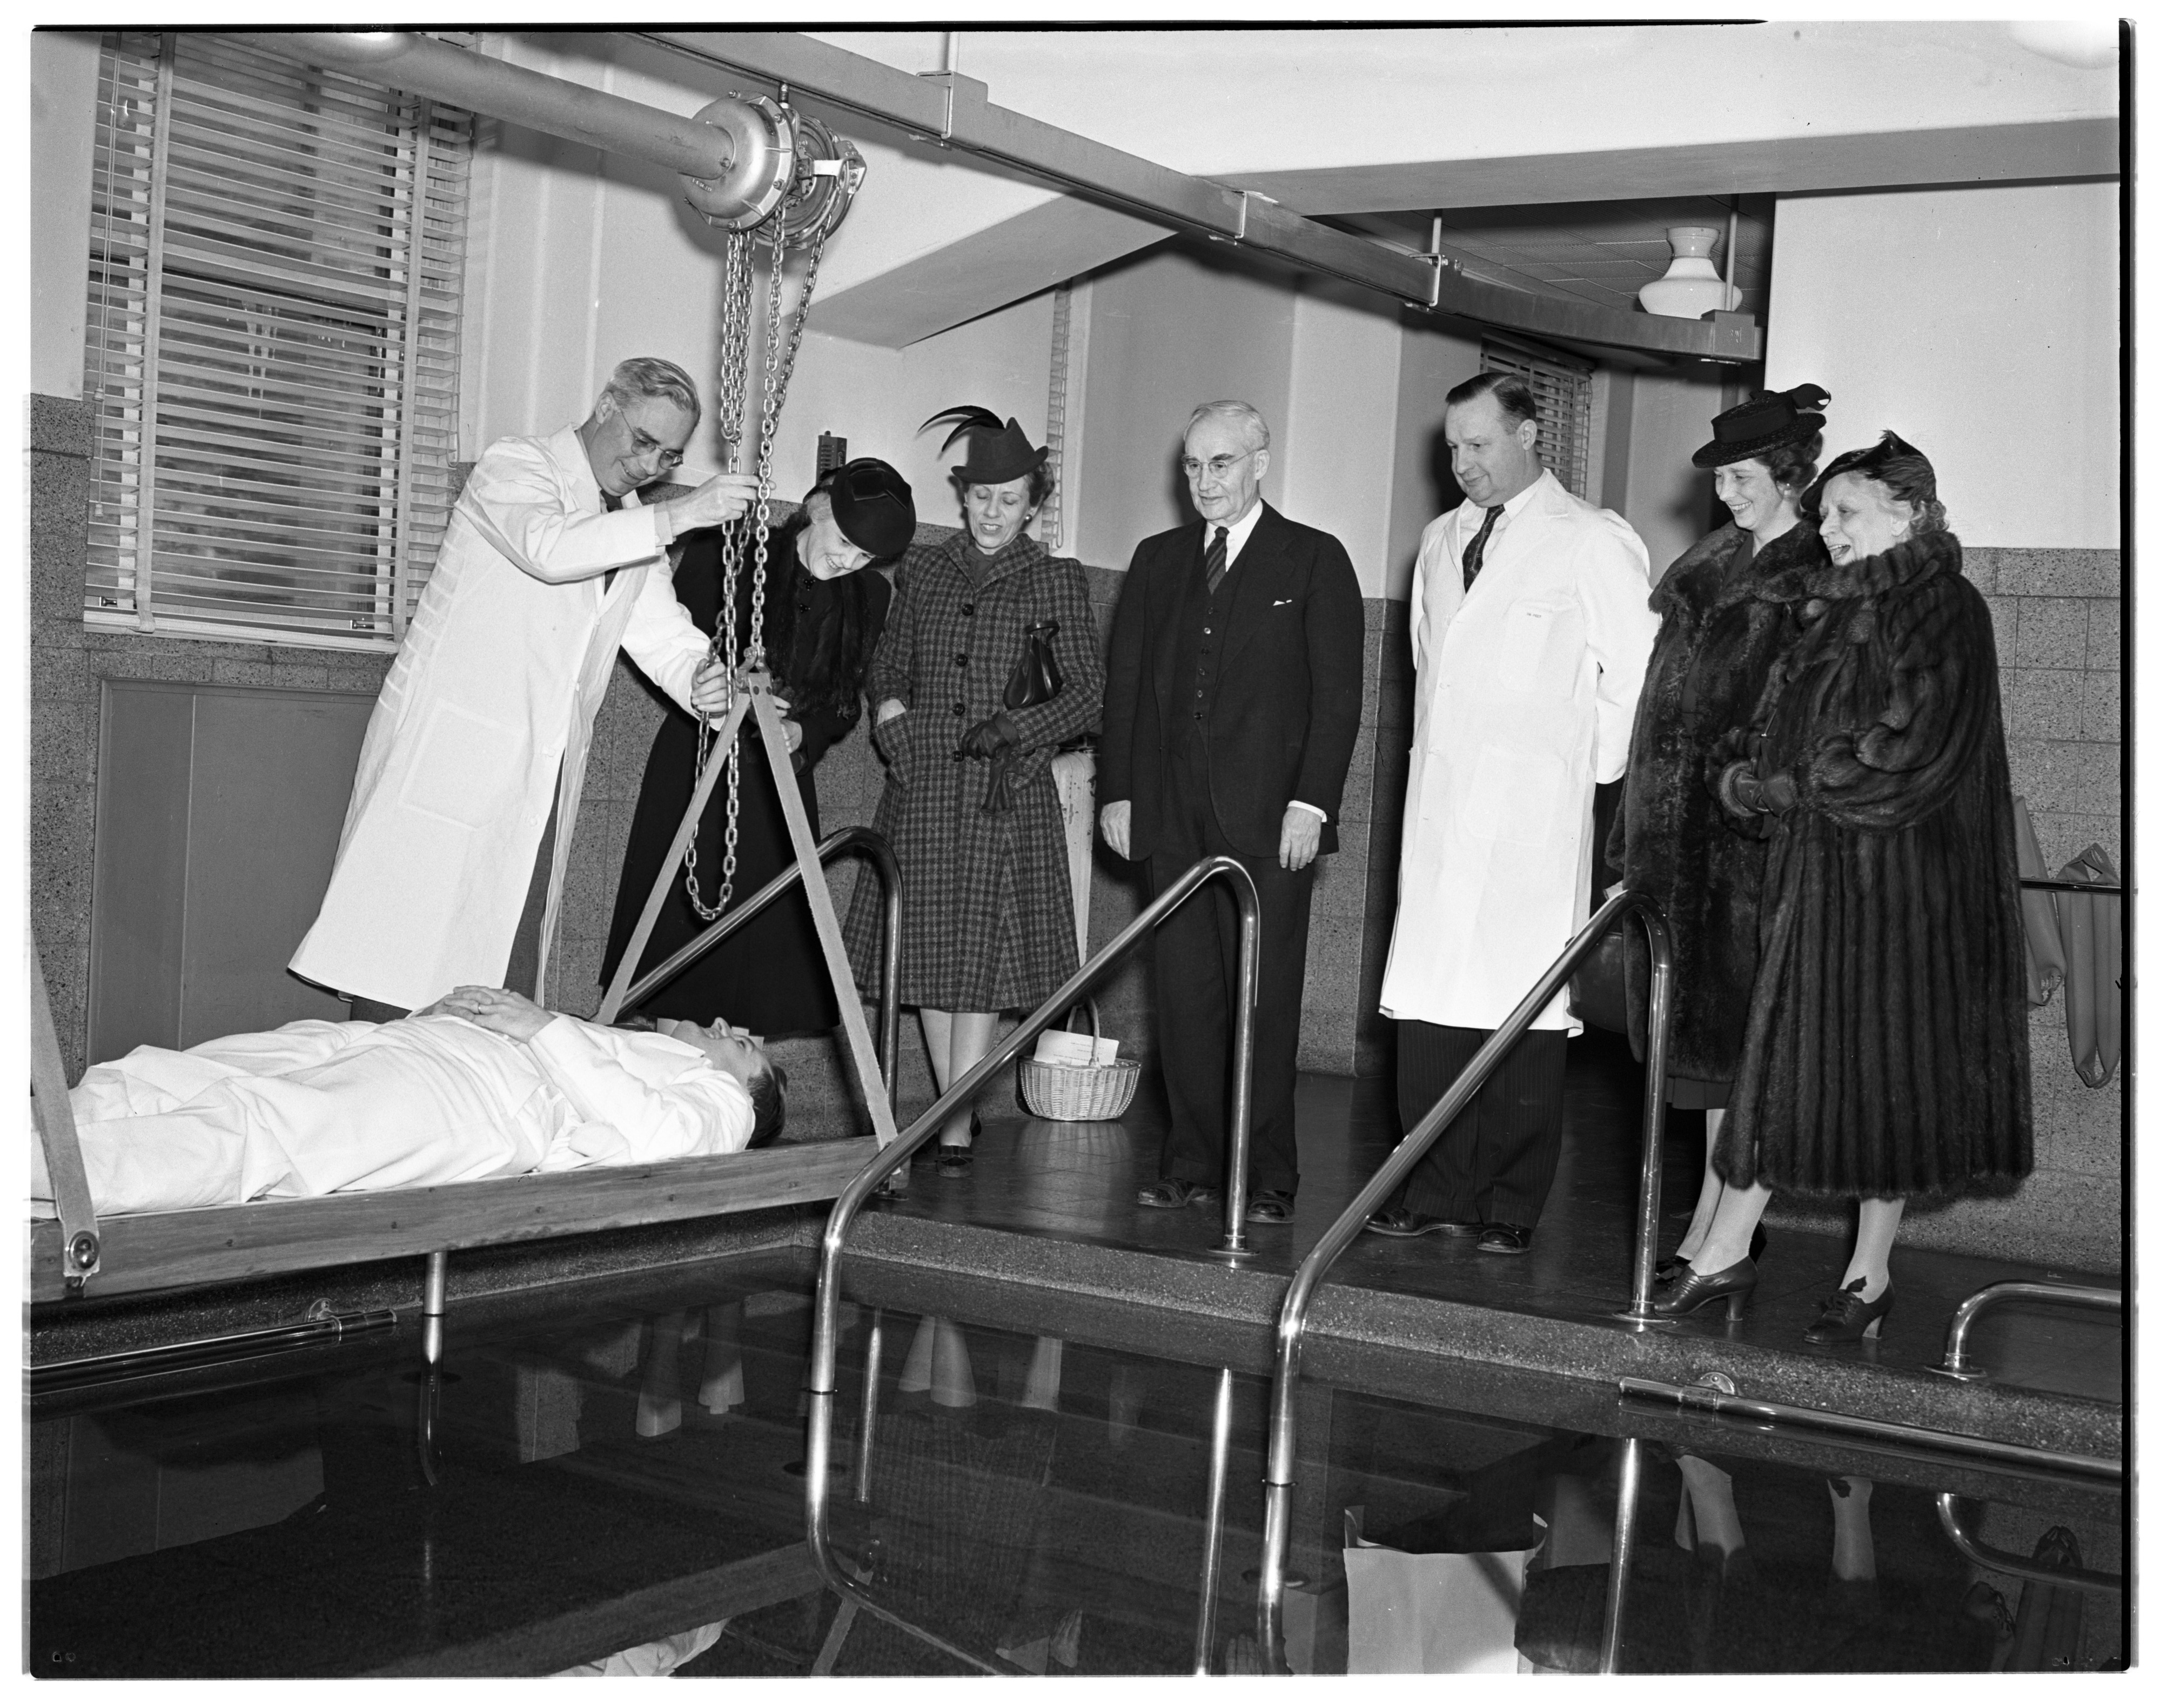 New Physiotherapy Pool for Polio Patients at University Hospital, January 1940 image